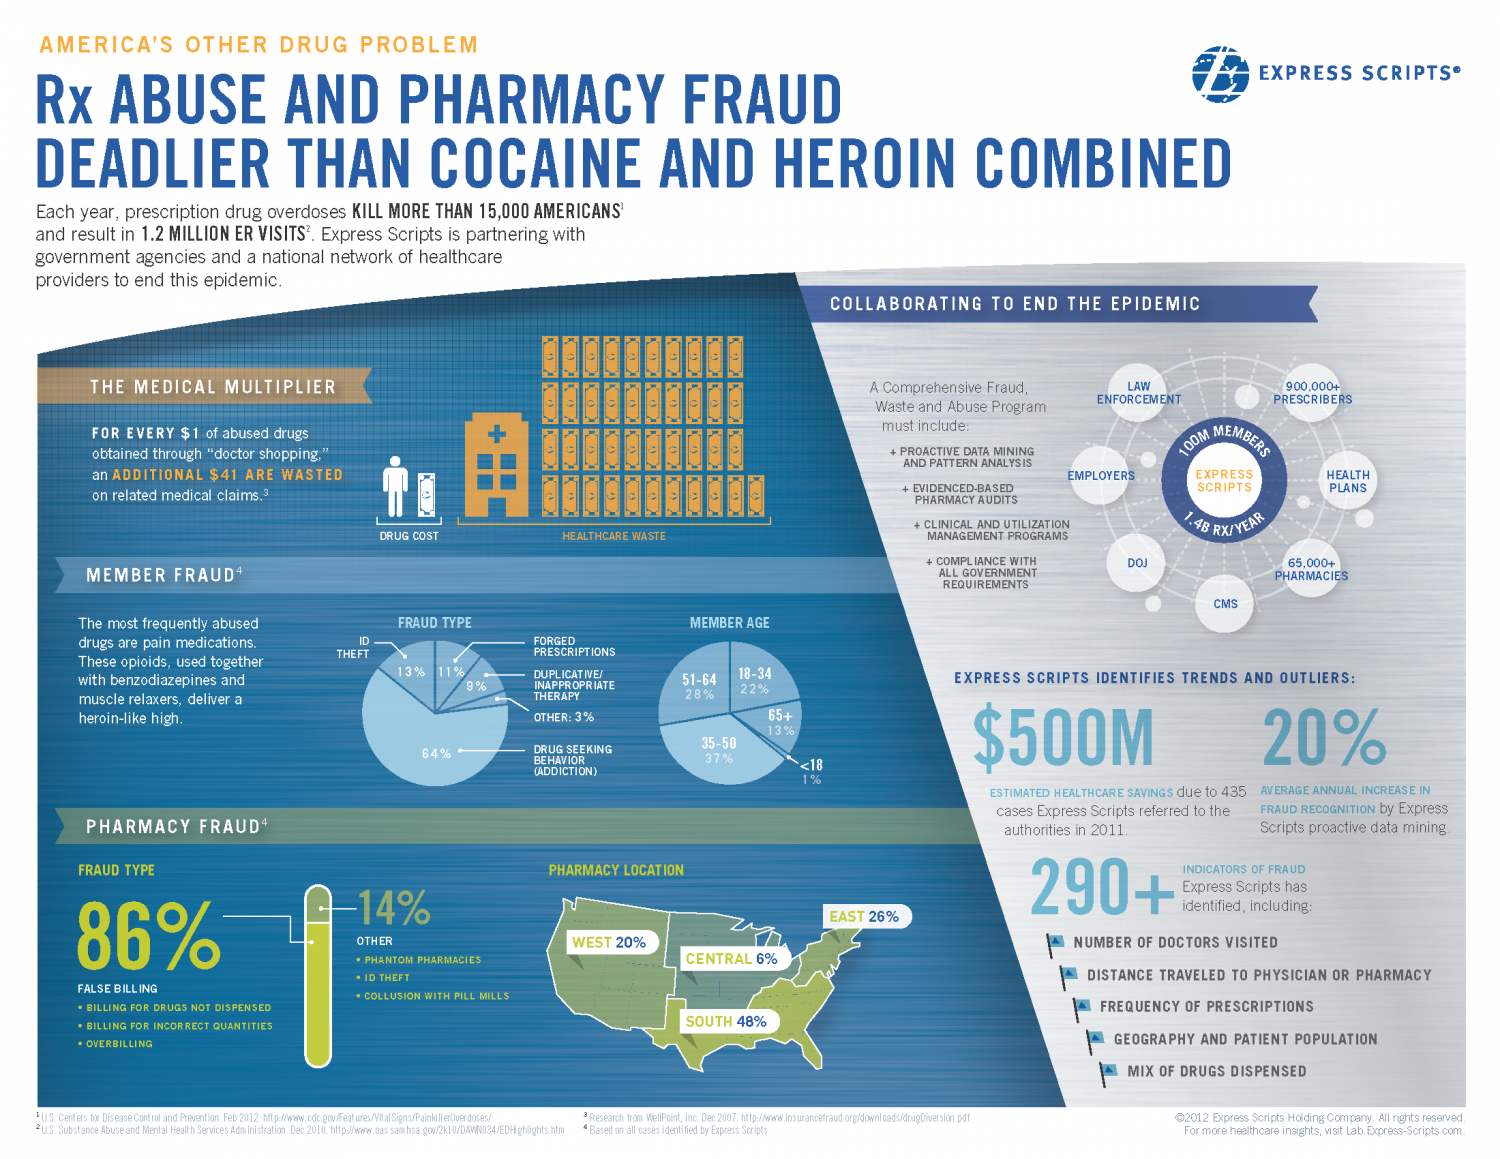 America's Other Drug Problem Infographic